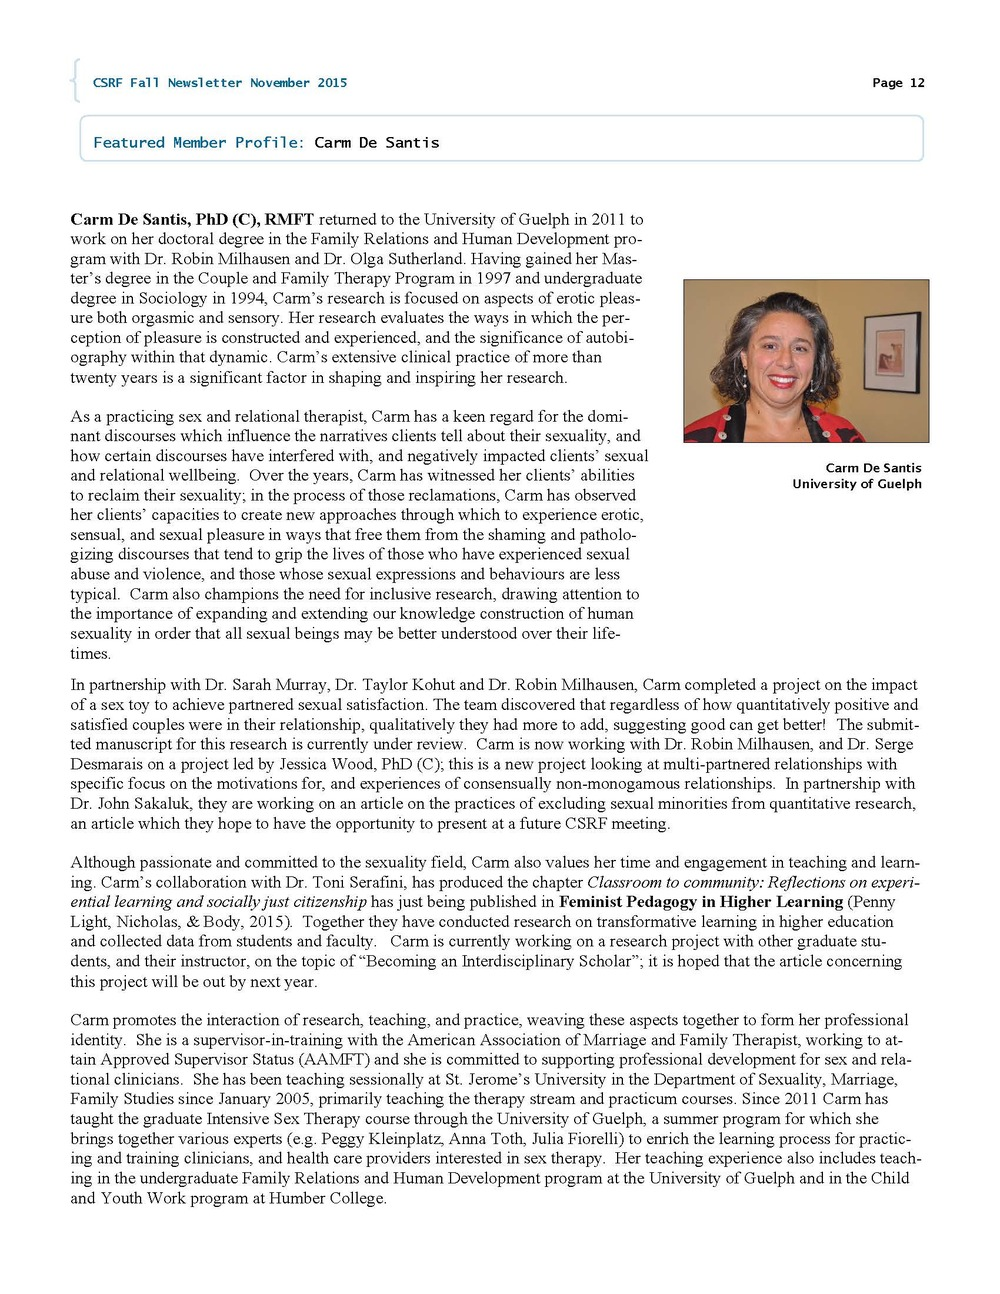 CSRF Fall Newsletter 2015_Page_12.jpg